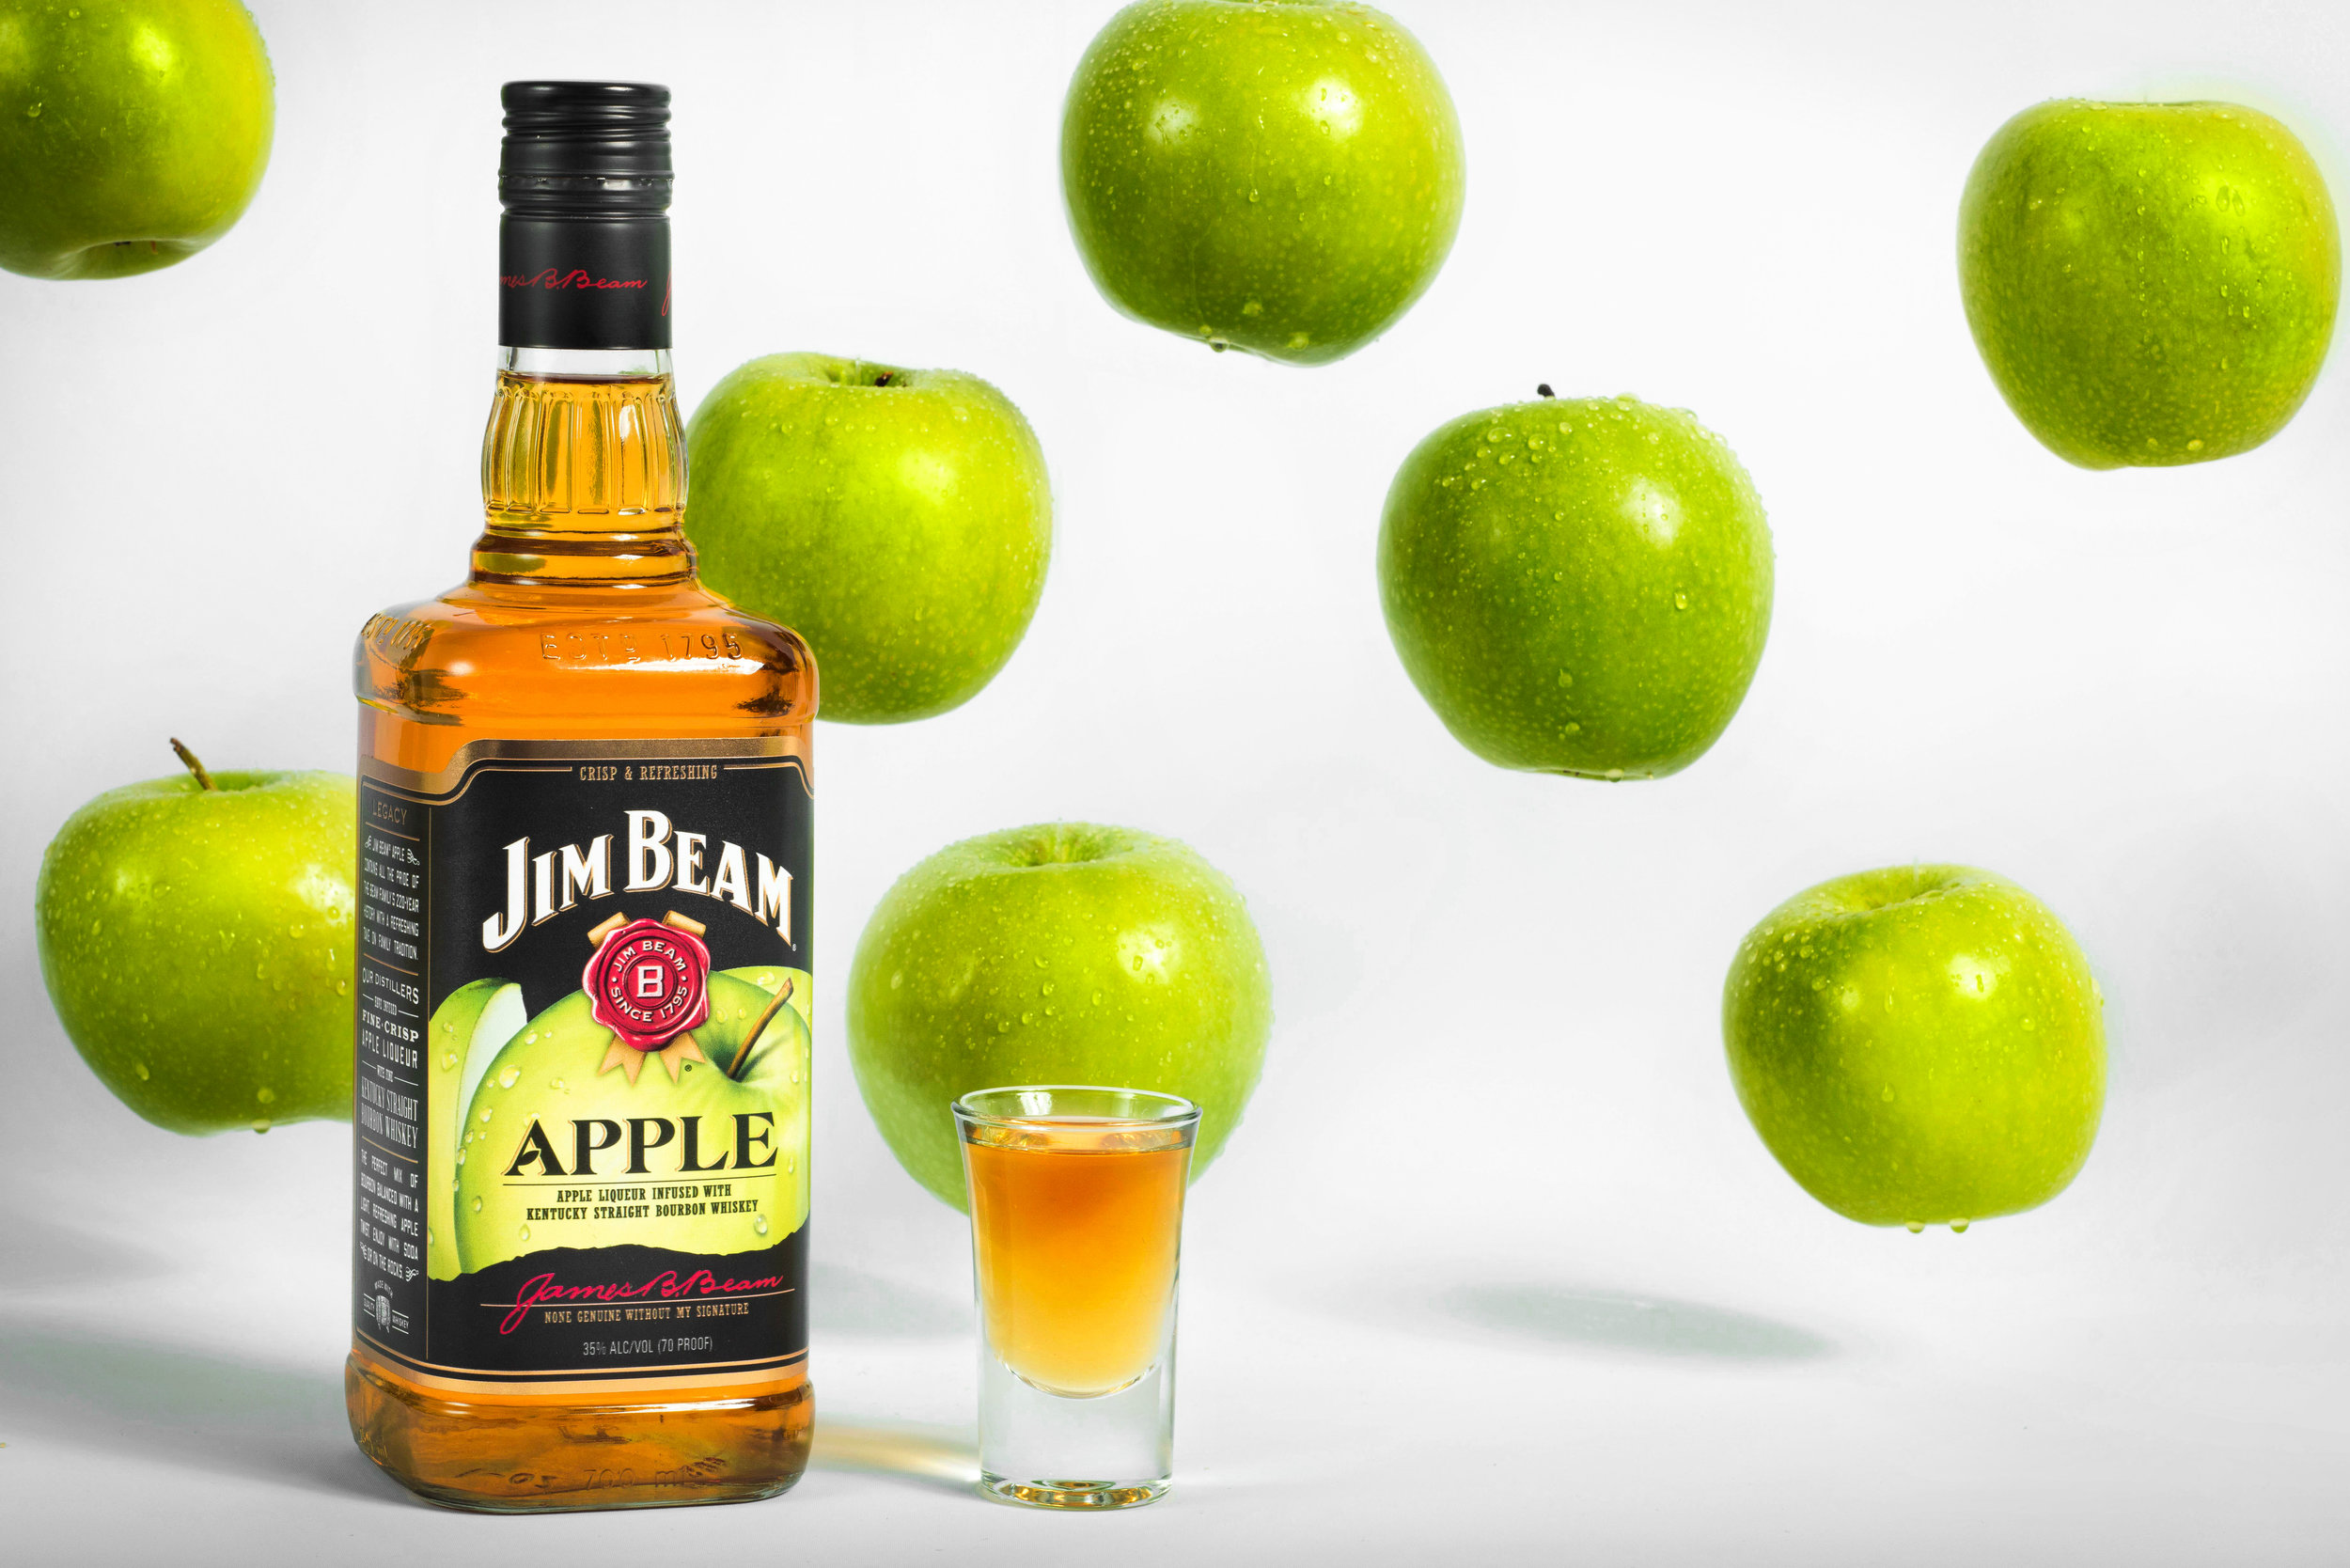 Jim Beam Apple - Apples